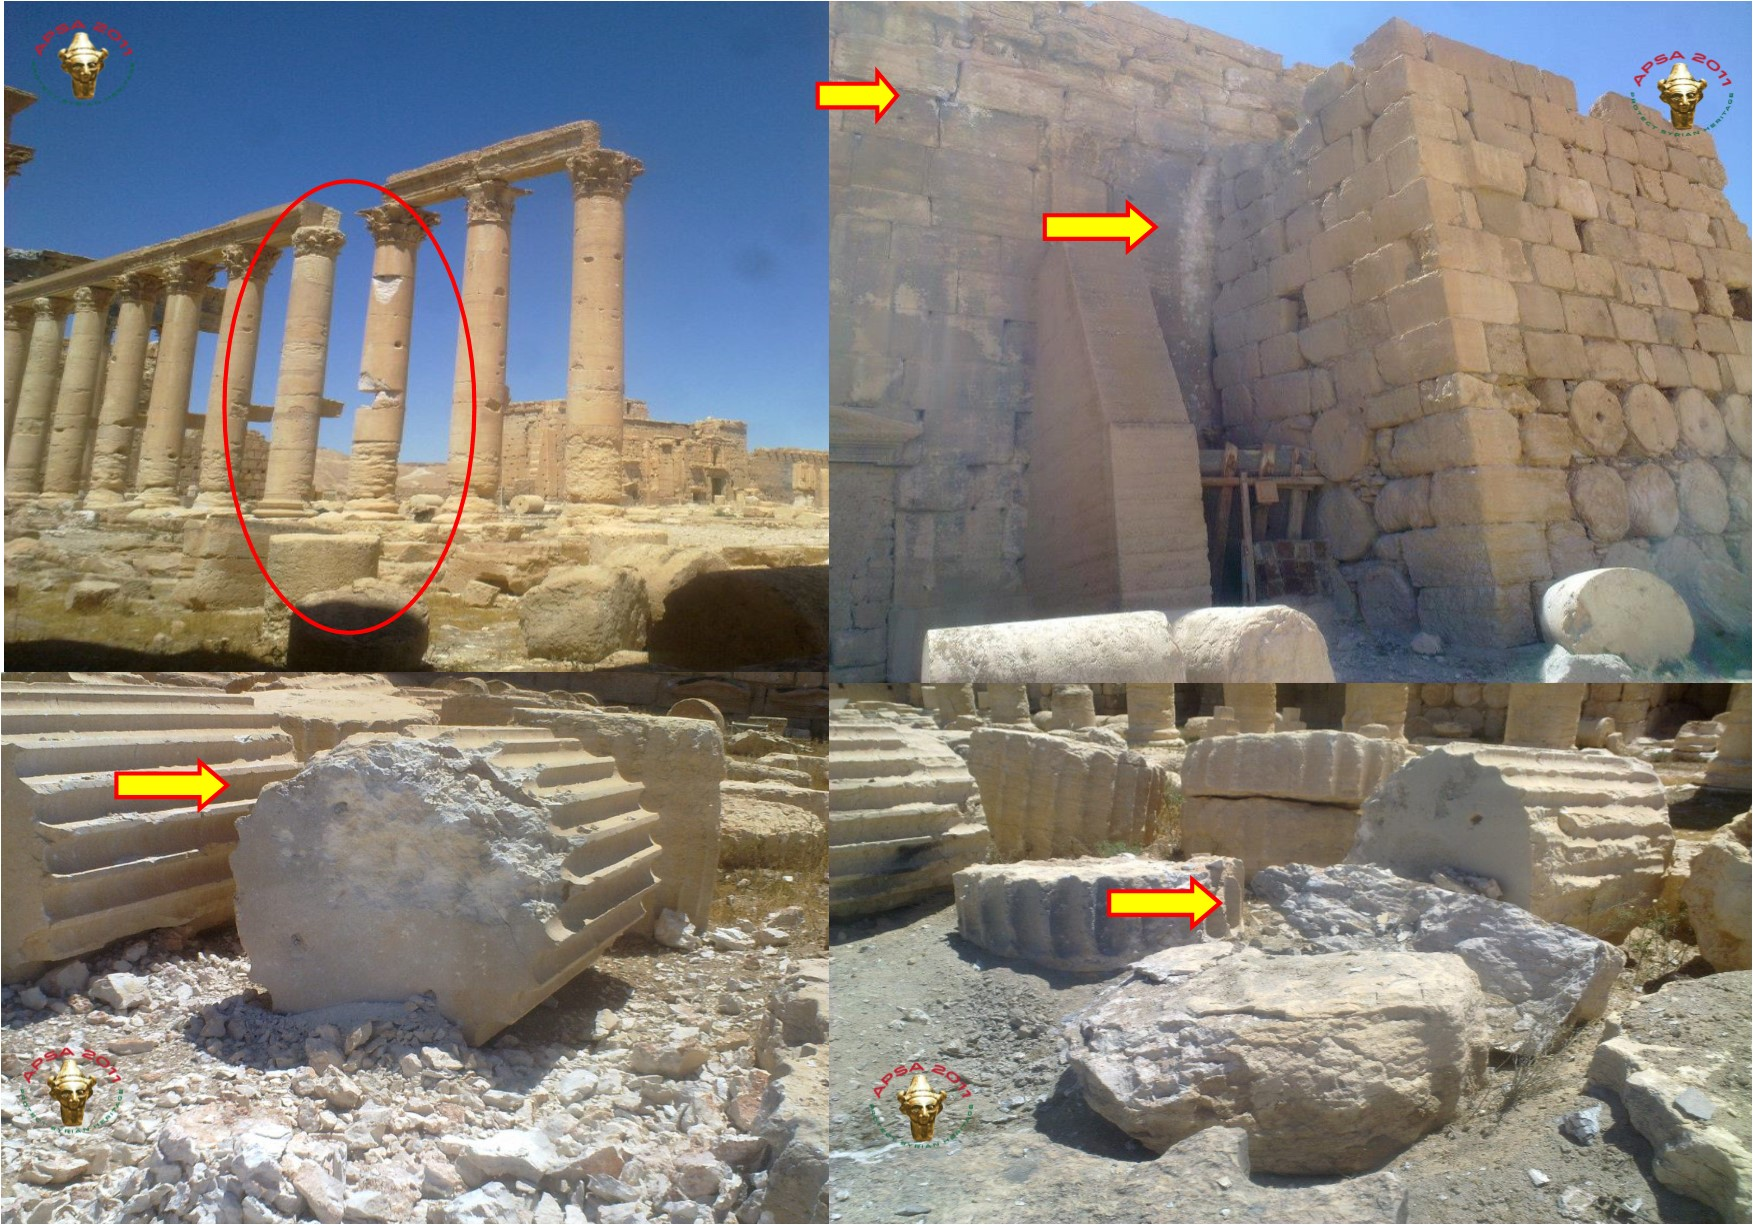 Damage to Temple of Bel by regime occupation, photo courtesy of APSA.